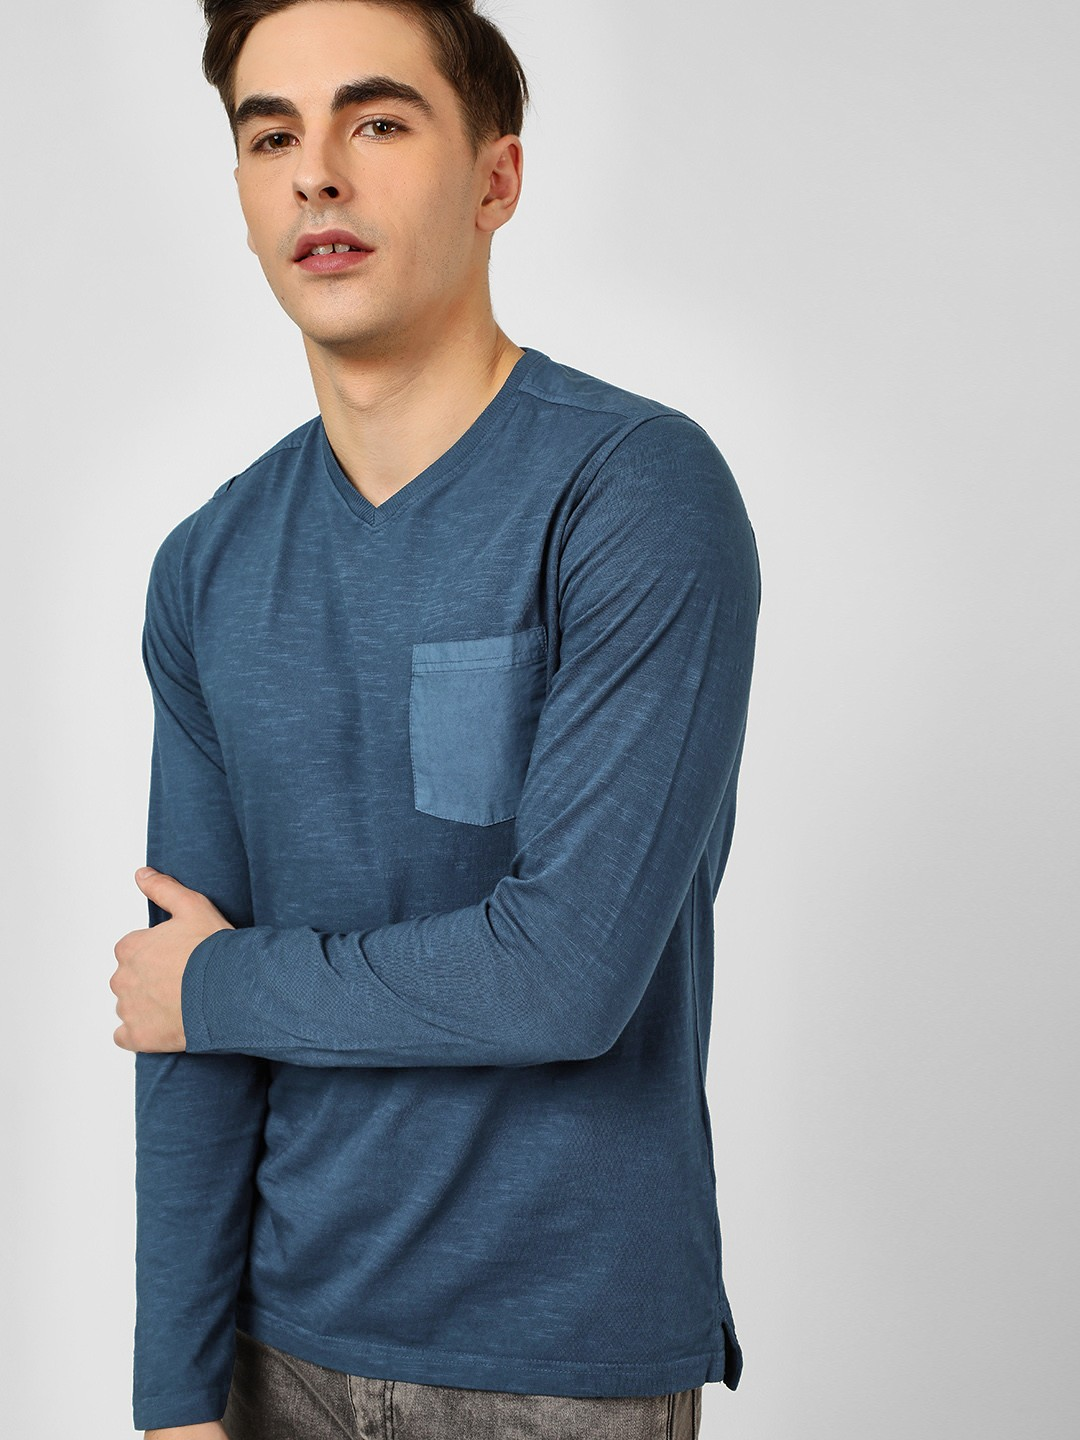 Buffalo Blue Woven Pocket V-Neck T-Shirt 1